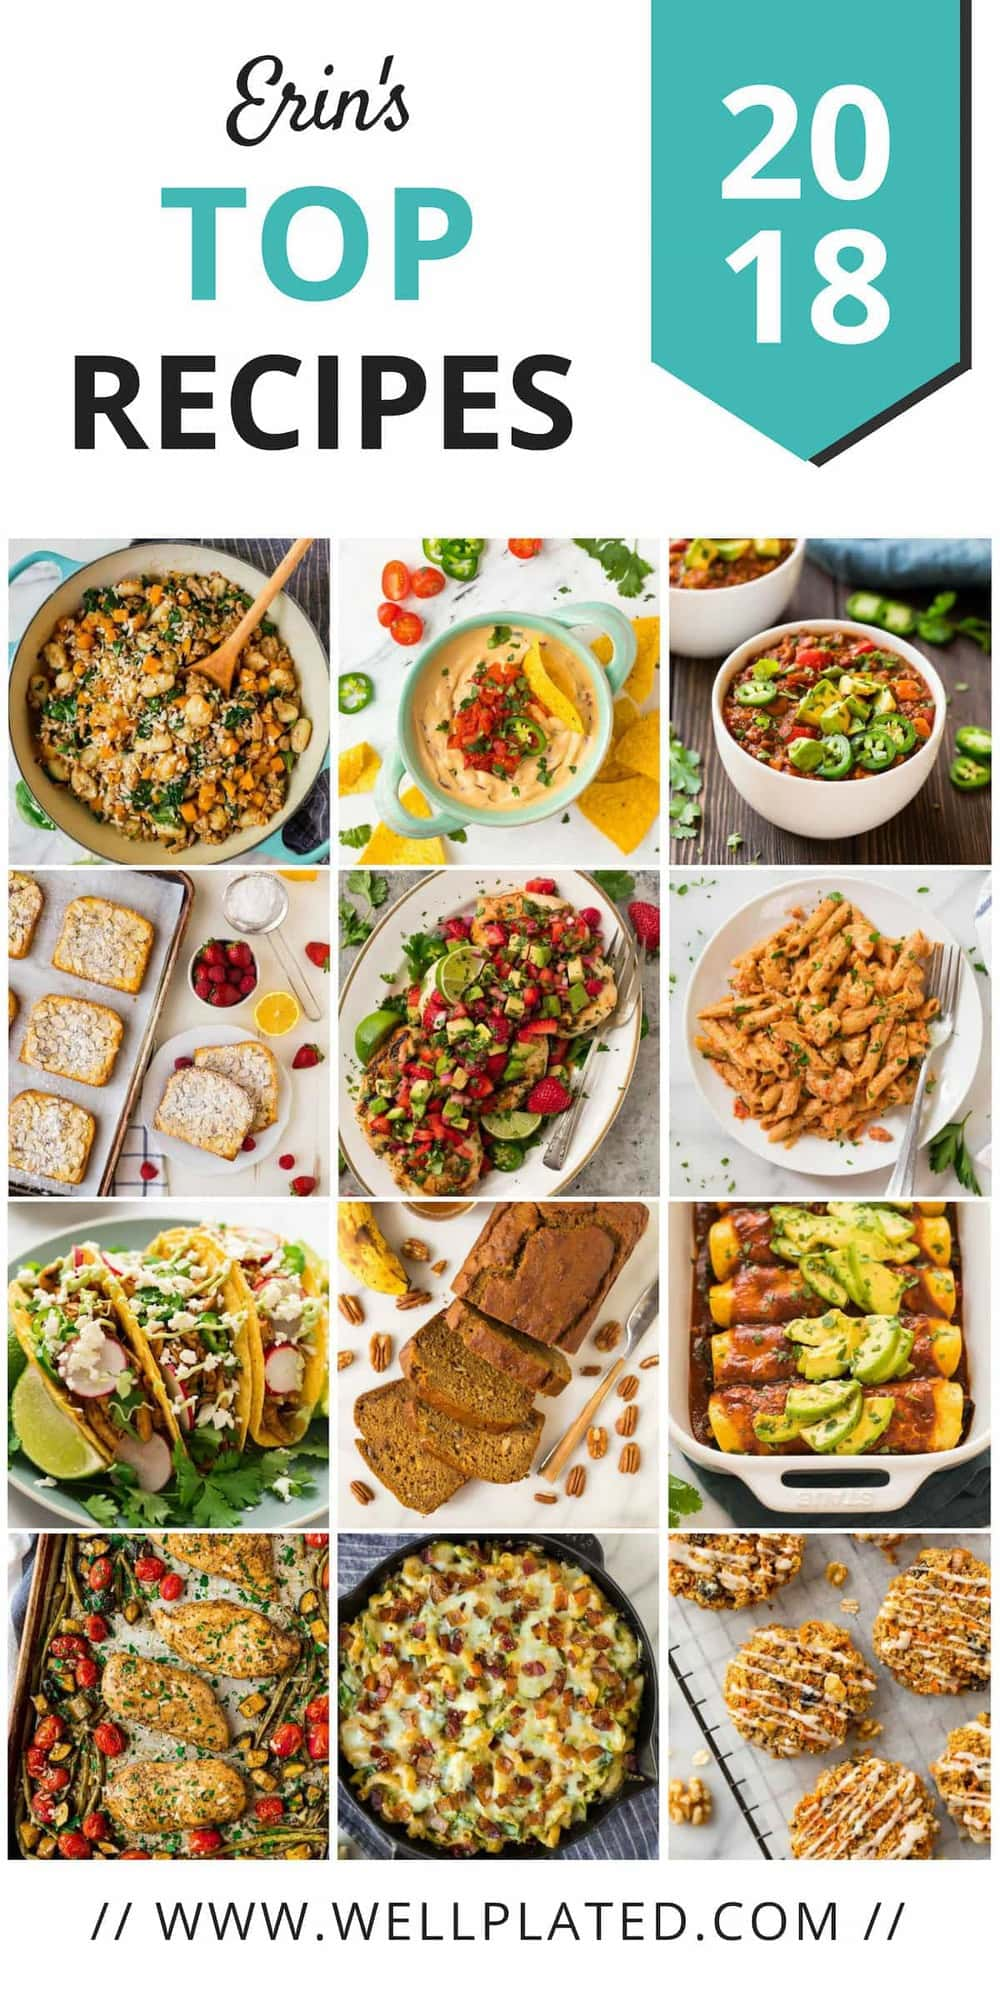 The 12 best healthy recipes of 2018. Of hundreds of recipes, these easy, family friendly dinners and breakfasts rose to the top!